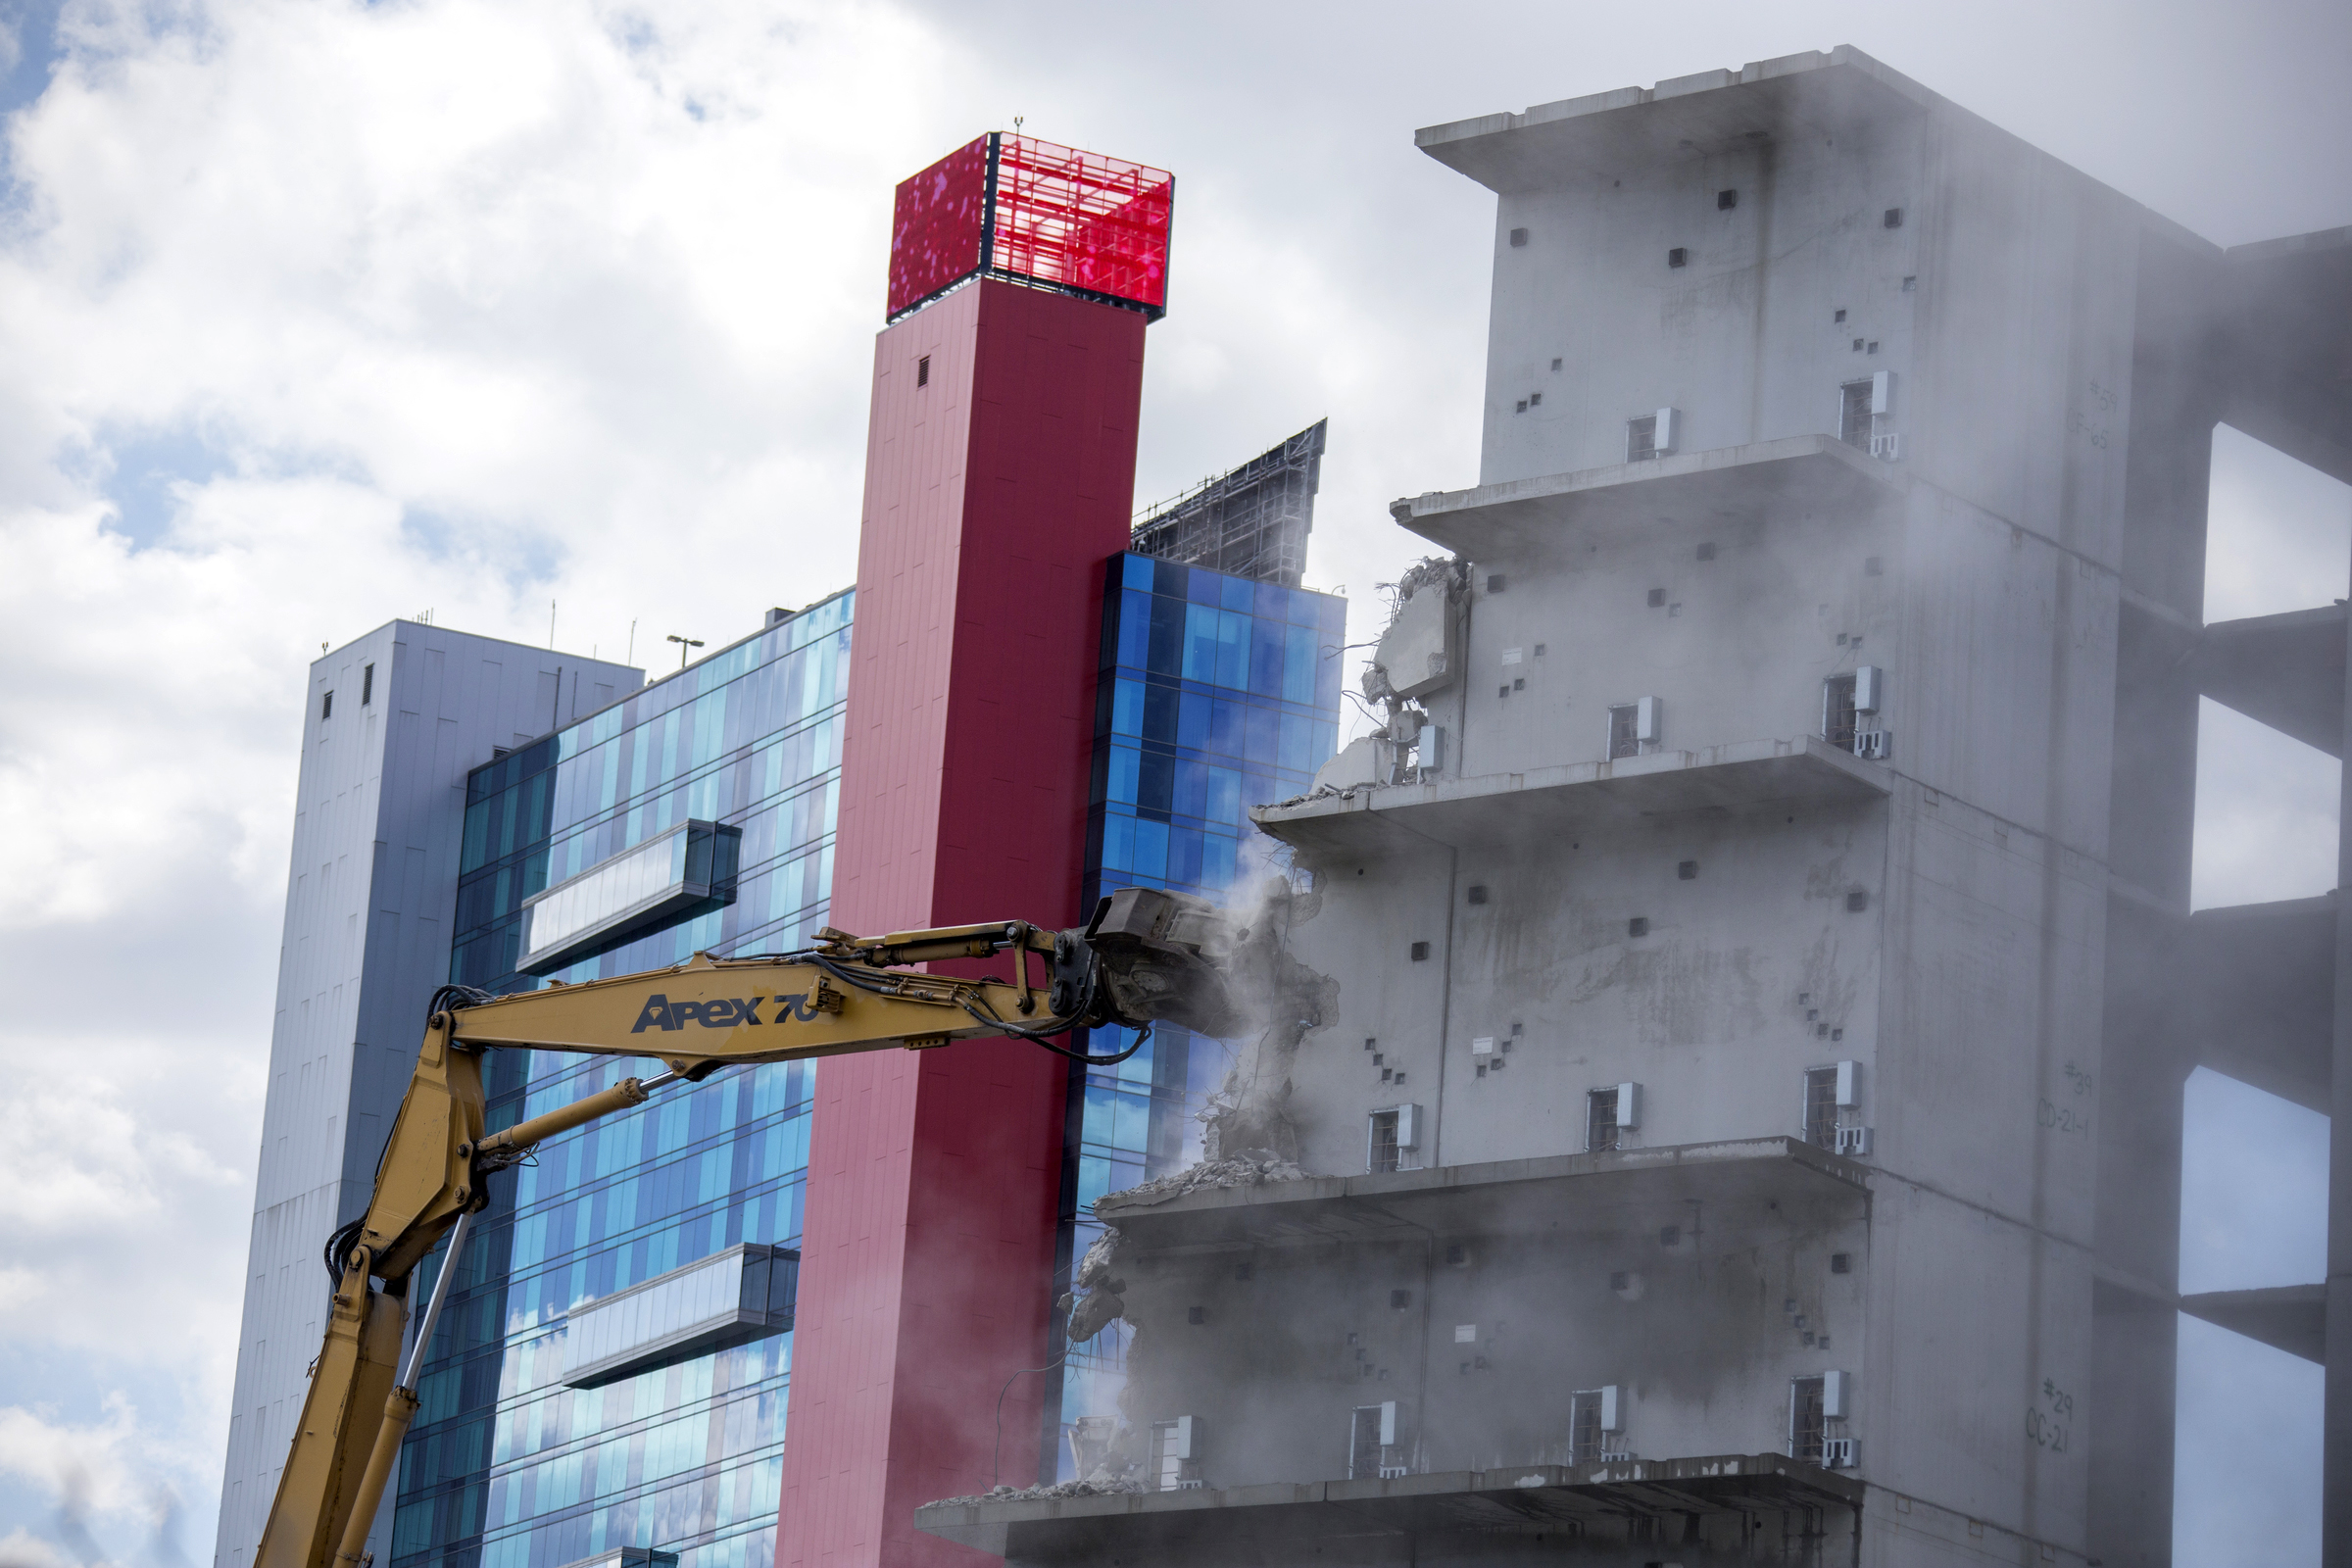 In the shadows of the Greektown Casino Hotel, demolition began on the failed Wayne County Jail project in 2018. After millions of dollars were poured into the project, construction was halted due to cost overruns. The property was later sold to a private business concern led by billionaire Dan Gilbert.  Courtesy of the Detroit Free Press.